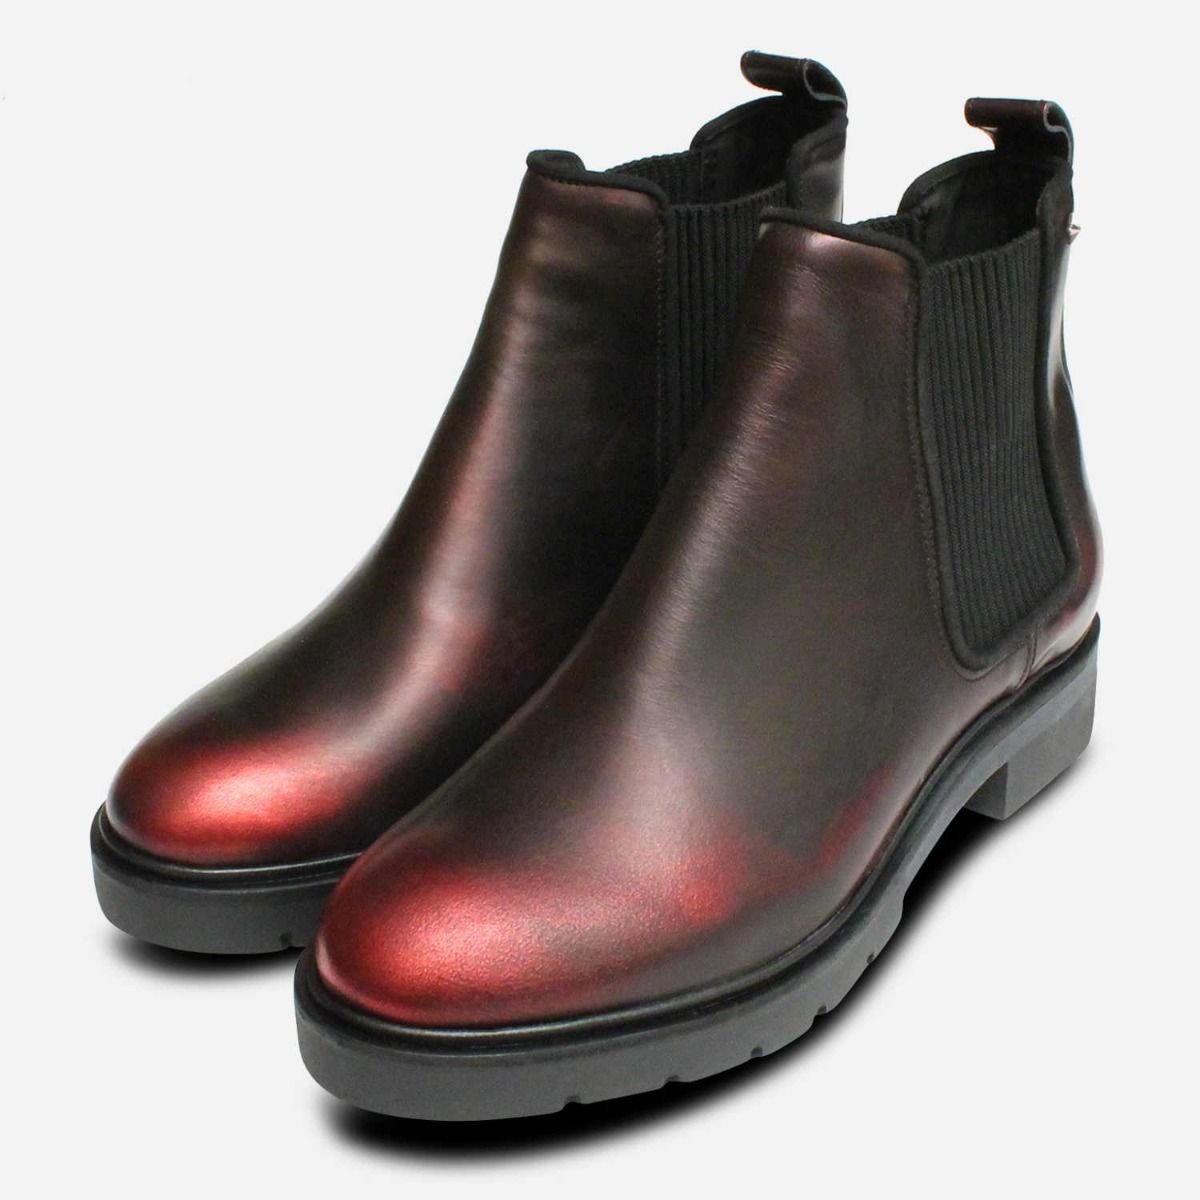 5d987285abbbed Dark Metallic Red Leather Tommy Hilfiger Chelsea Boots